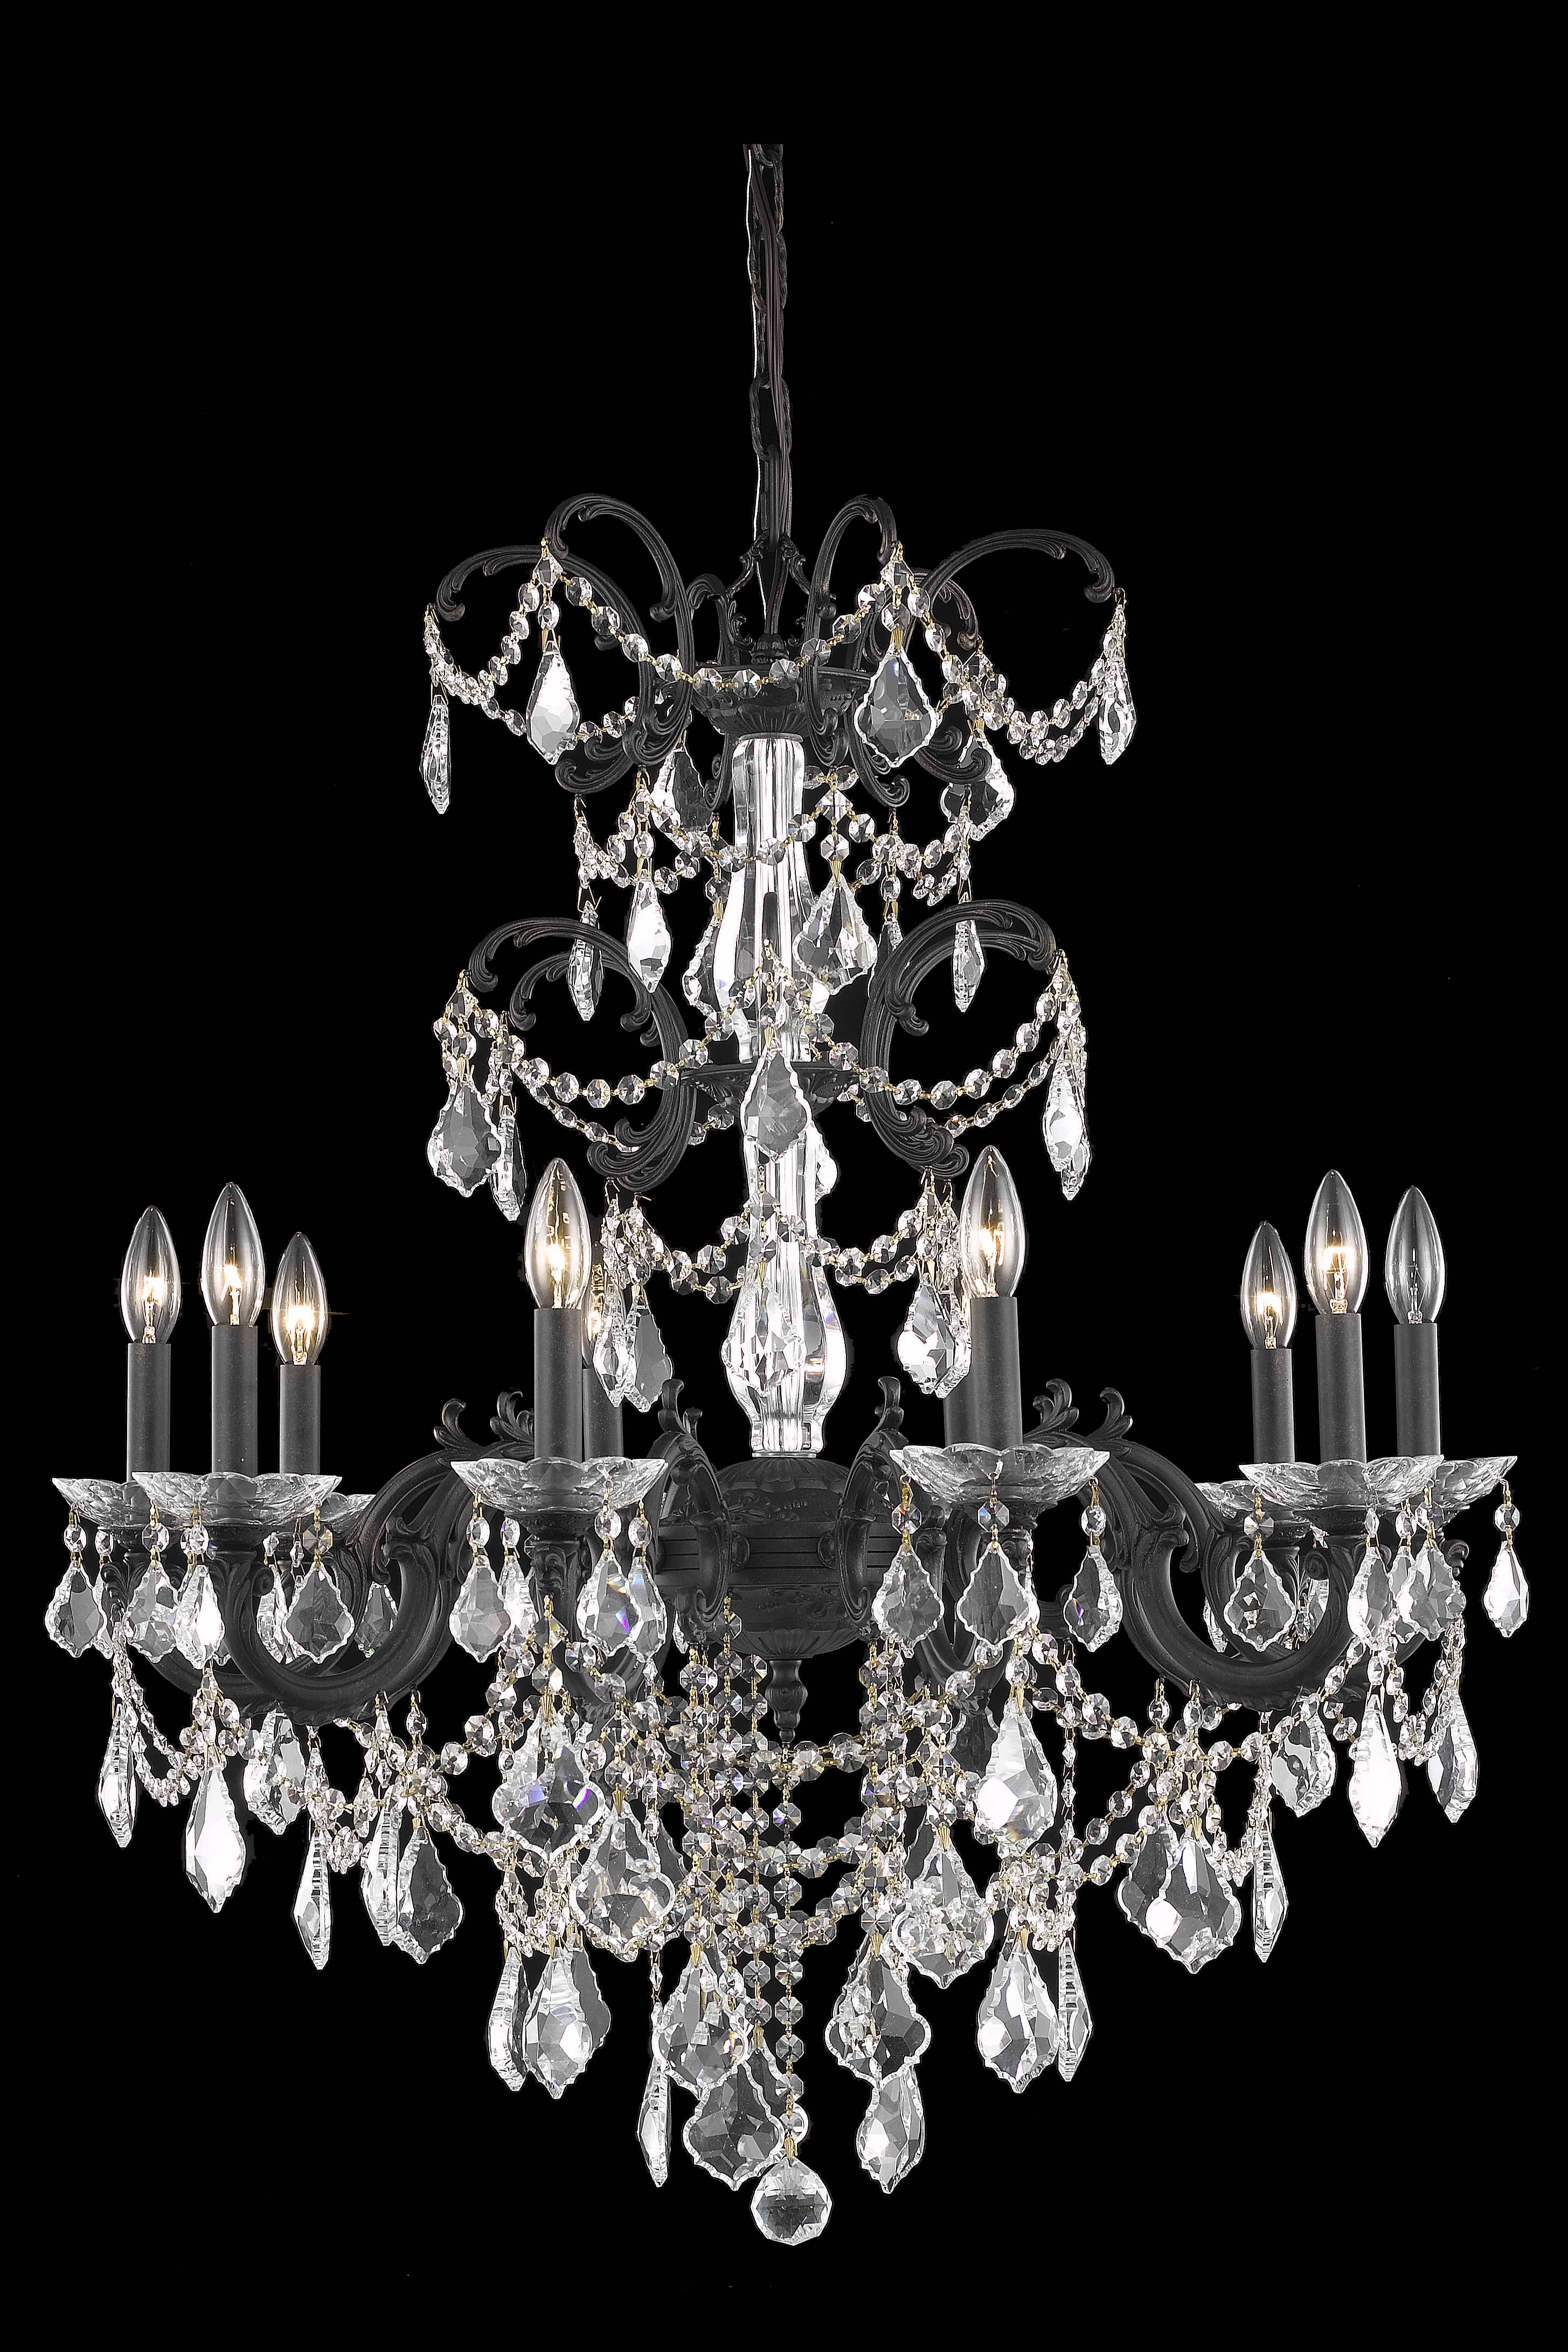 Lighting Furniture Bronze Chandelier Light Cut Crystal Photo